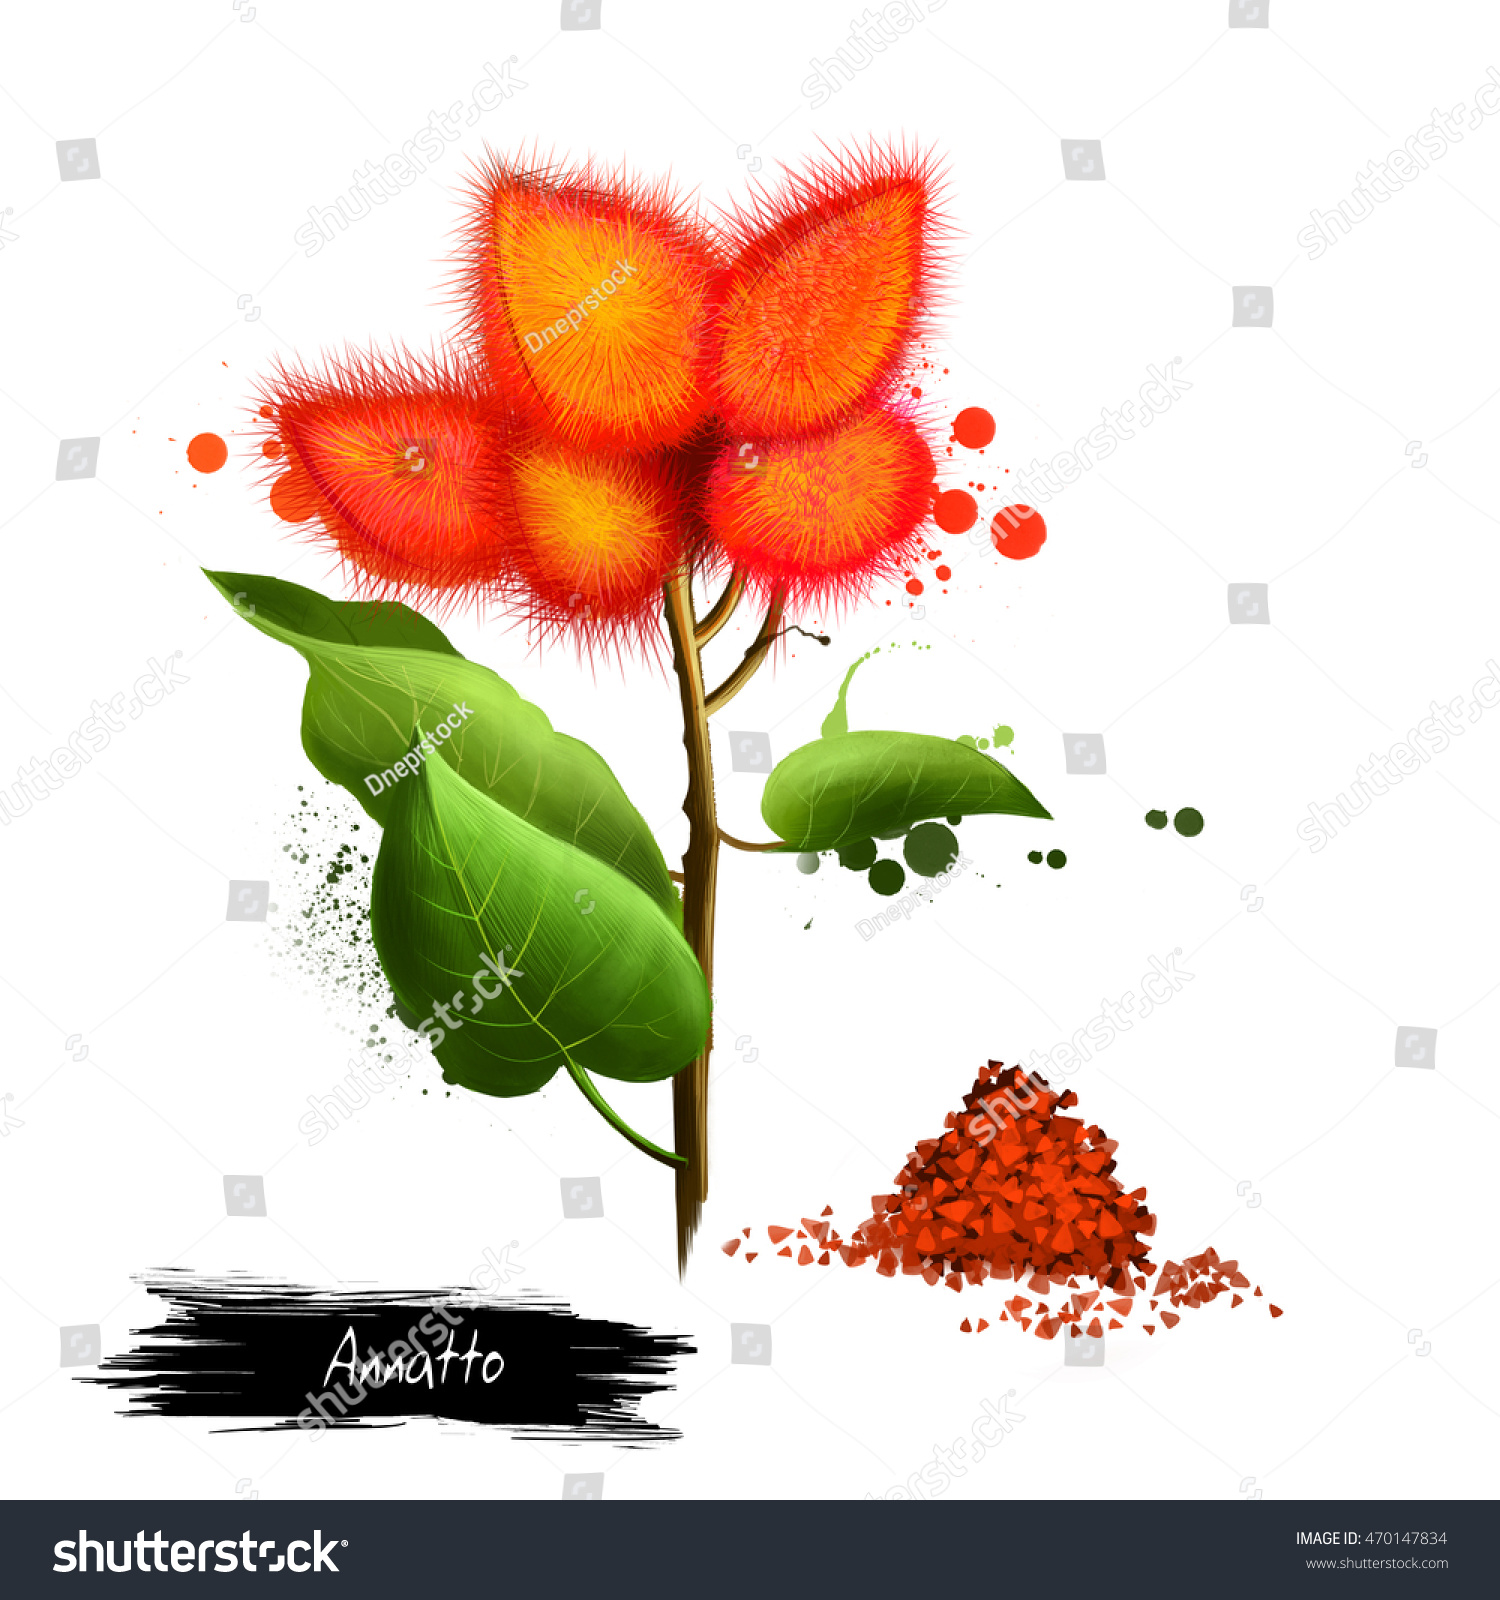 Annatto Lipstick Tree Dried Seeds Orangered Stock Illustration ...